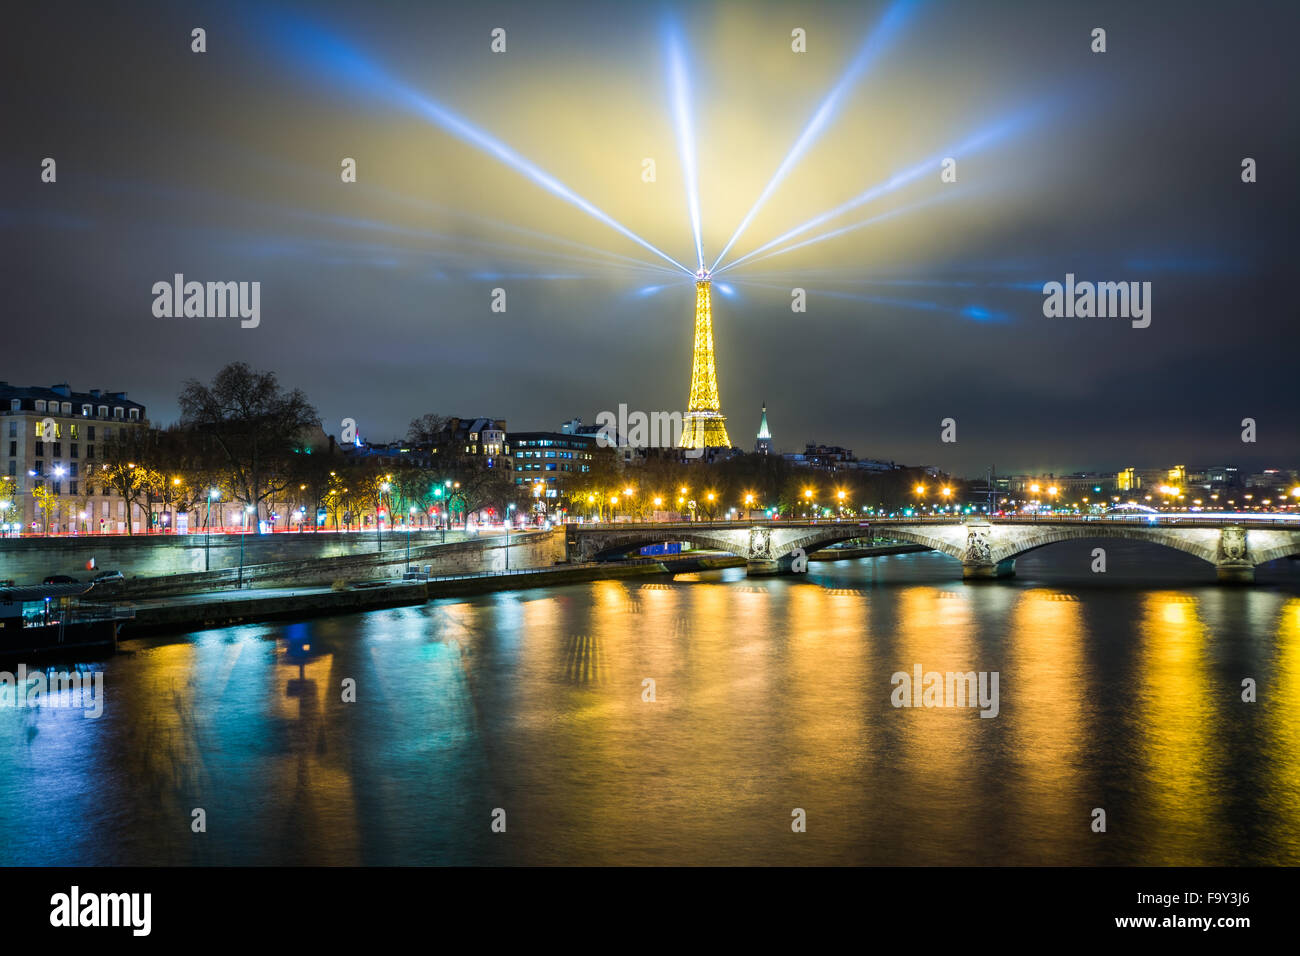 The Eiffel Tower and Seine at night, in Paris, France. - Stock Image